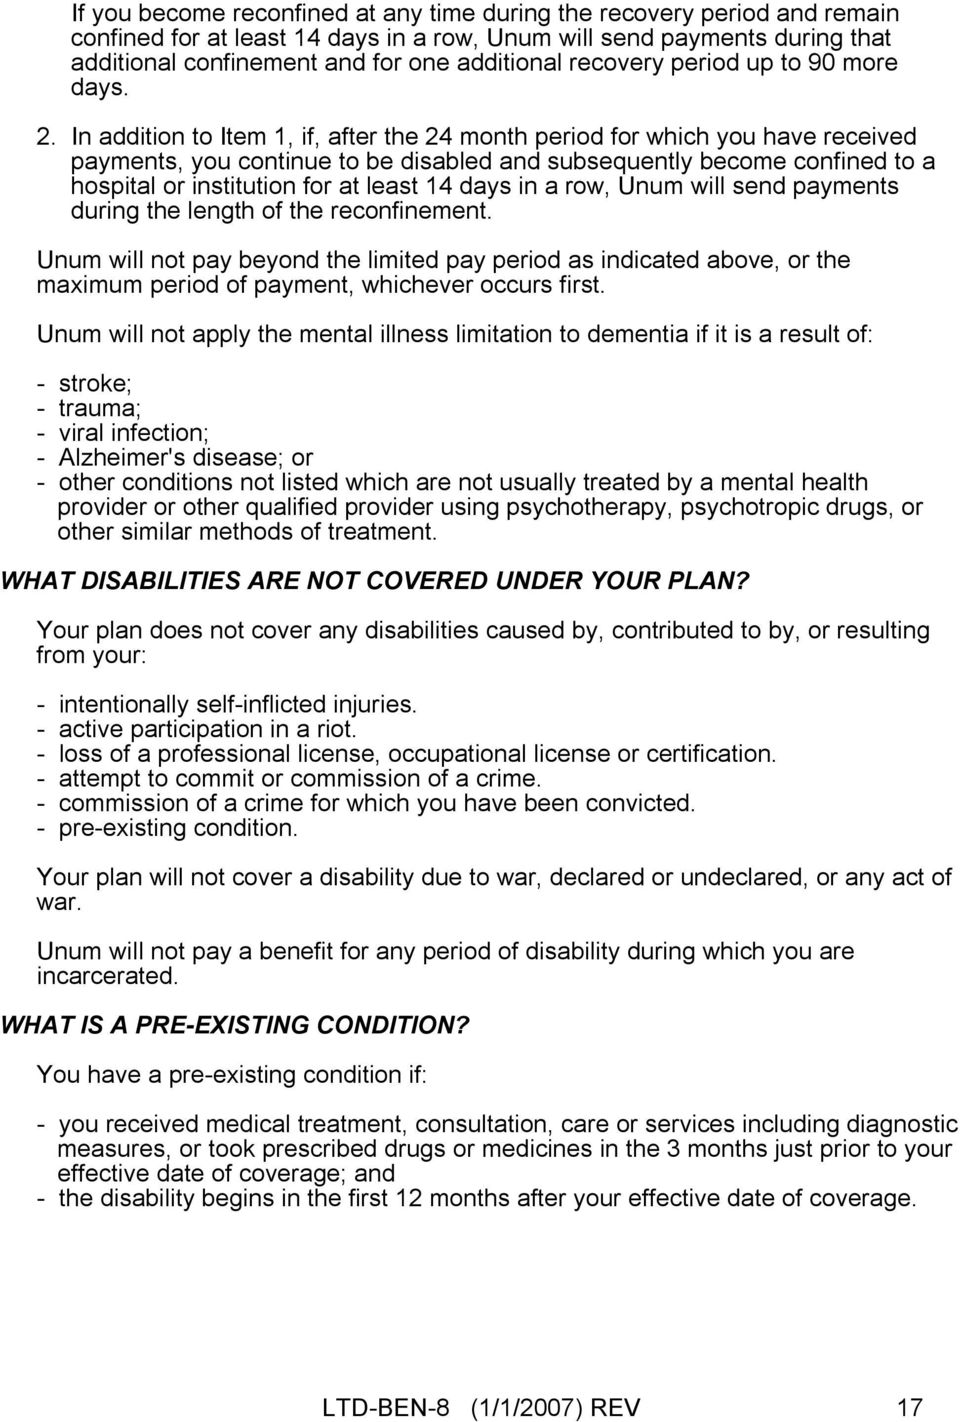 In addition to Item 1, if, after the 24 month period for which you have received payments, you continue to be disabled and subsequently become confined to a hospital or institution for at least 14